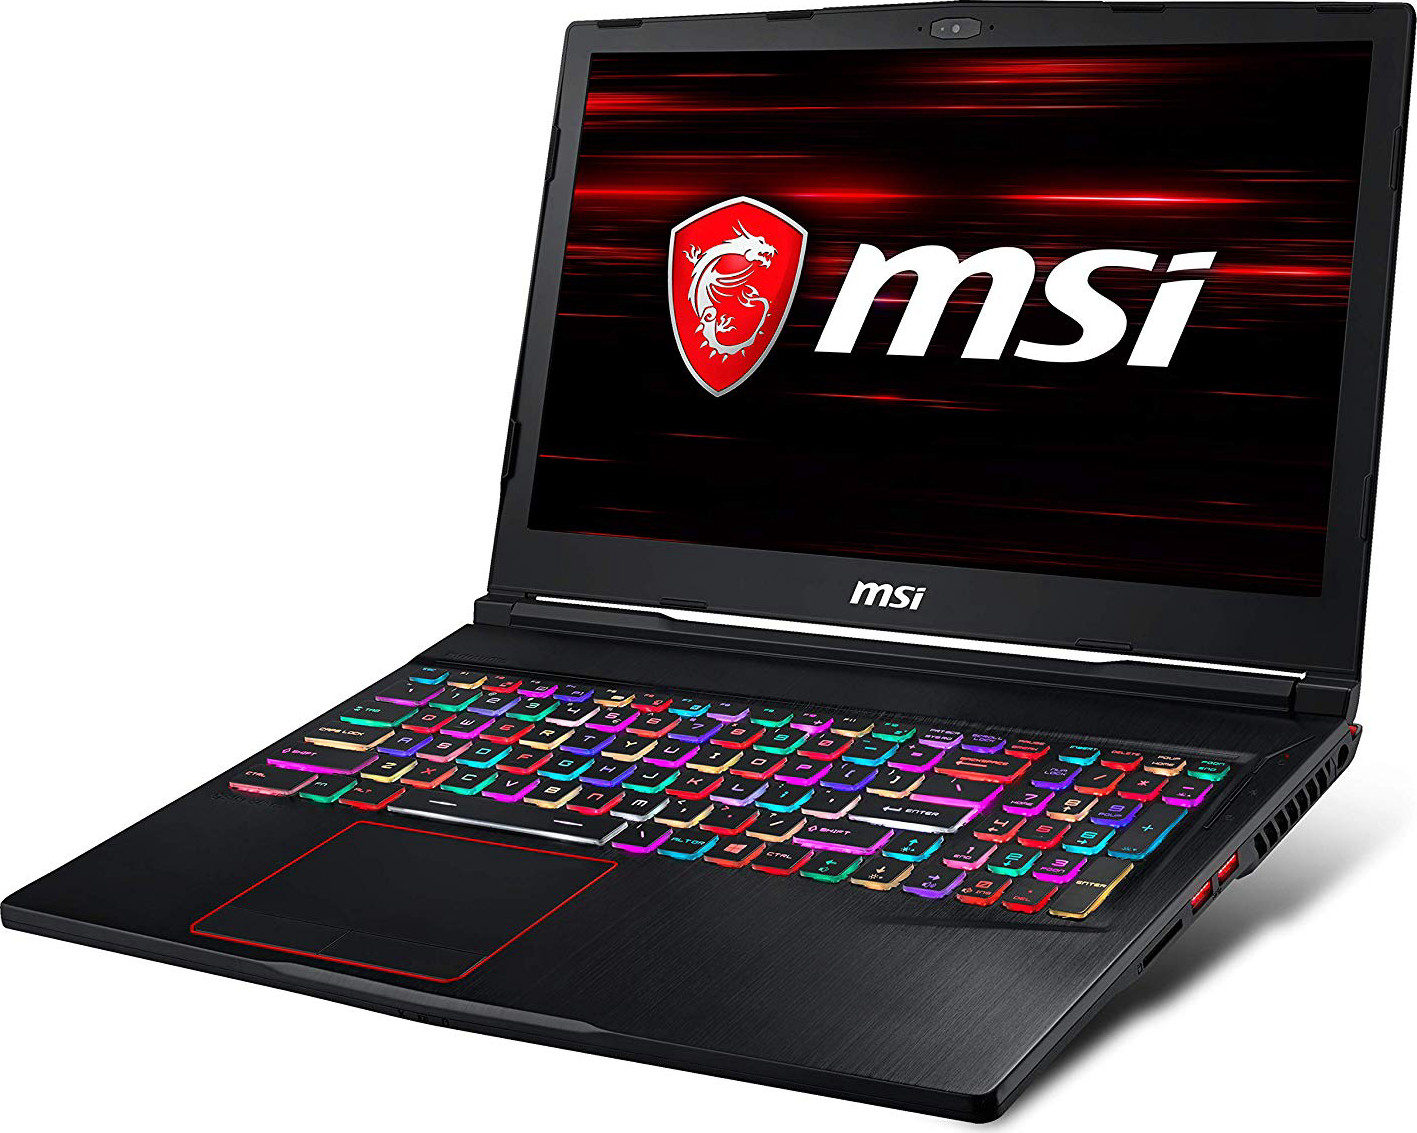 "CUK MSI GE63 Raider RGB Gamer Notebook (Intel i7-8750H, 32GB RAM, 512GB NVMe SSD + 1TB HDD, NVIDIA GeForce GTX 1060 6GB, 15.6"" FHD 120Hz 3ms, Windows 10 Home) Gaming Laptop Computer"